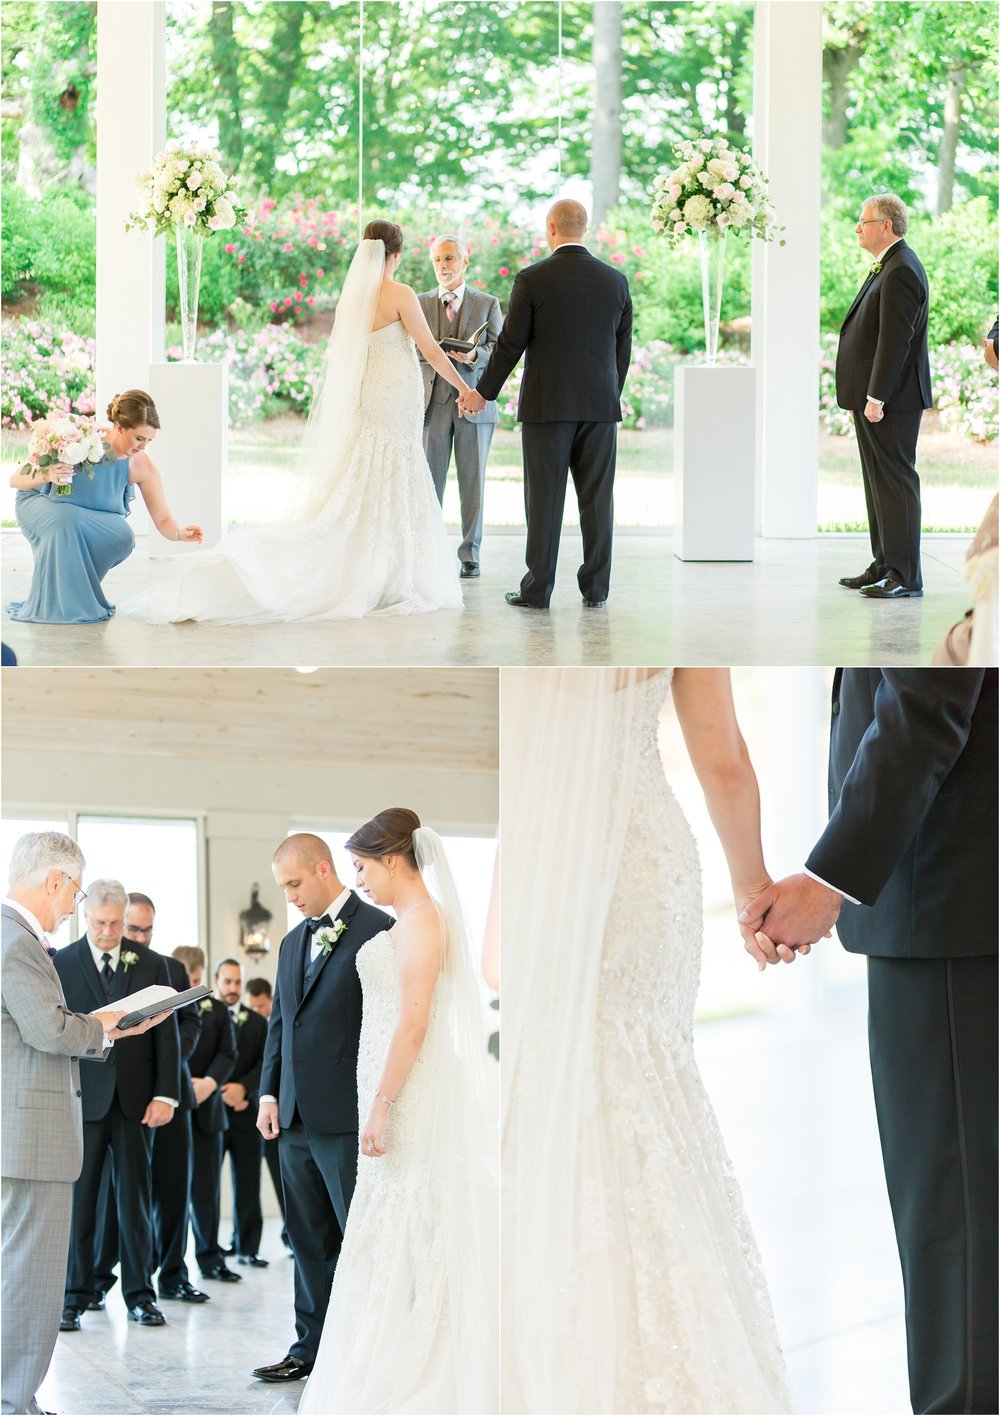 Savannah Eve Photography- Nutt Wedding- Blog-73.jpg